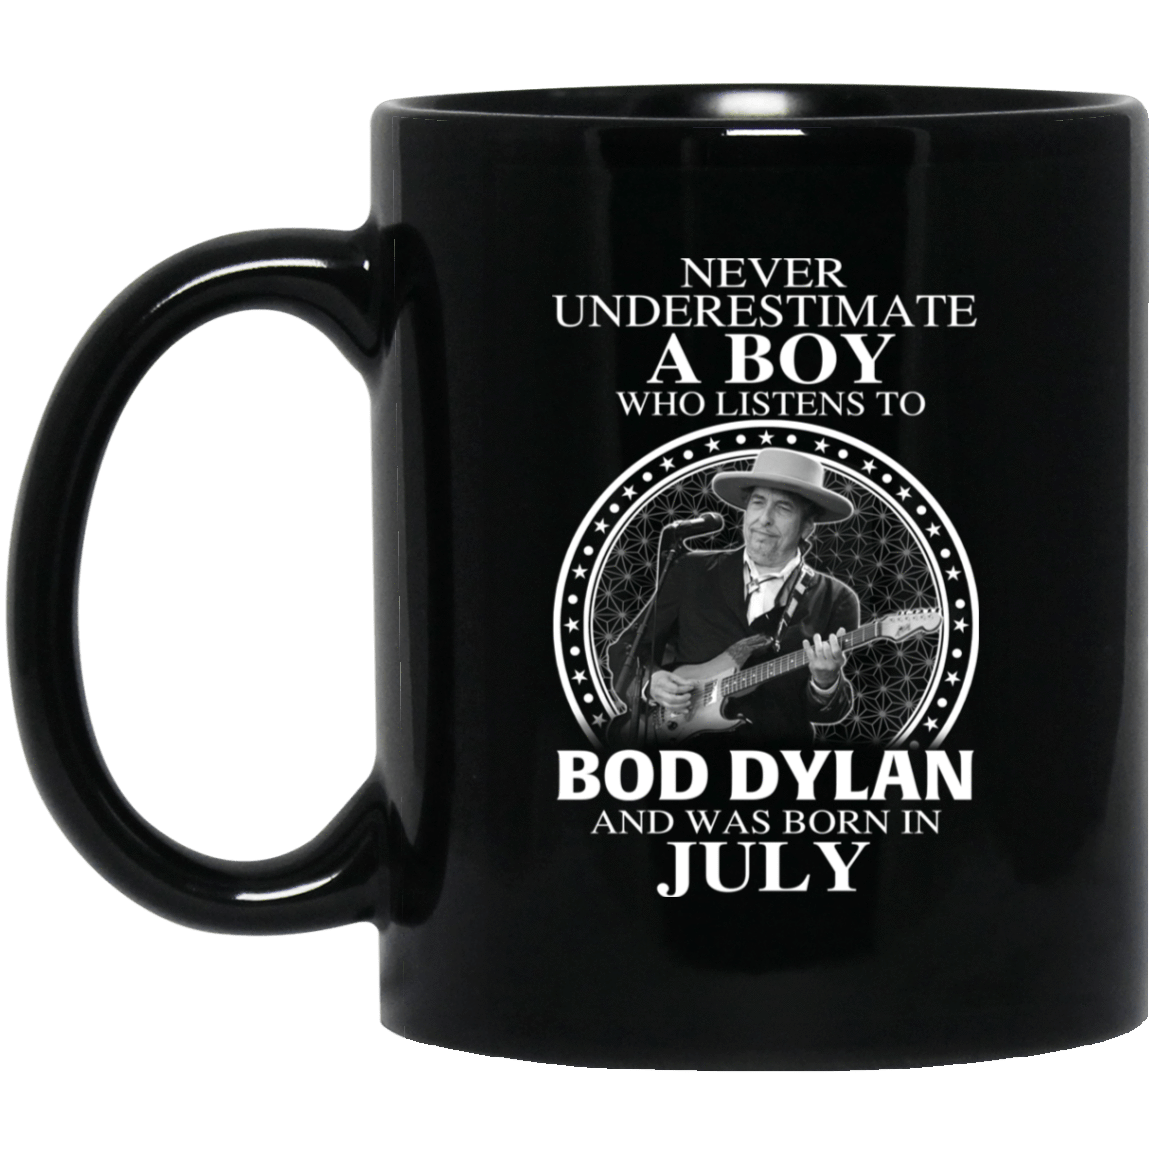 A Boy Who Listens To Bob Dylan And Was Born In July Mug 1065-10181-76154922-49307 - Tee Ript